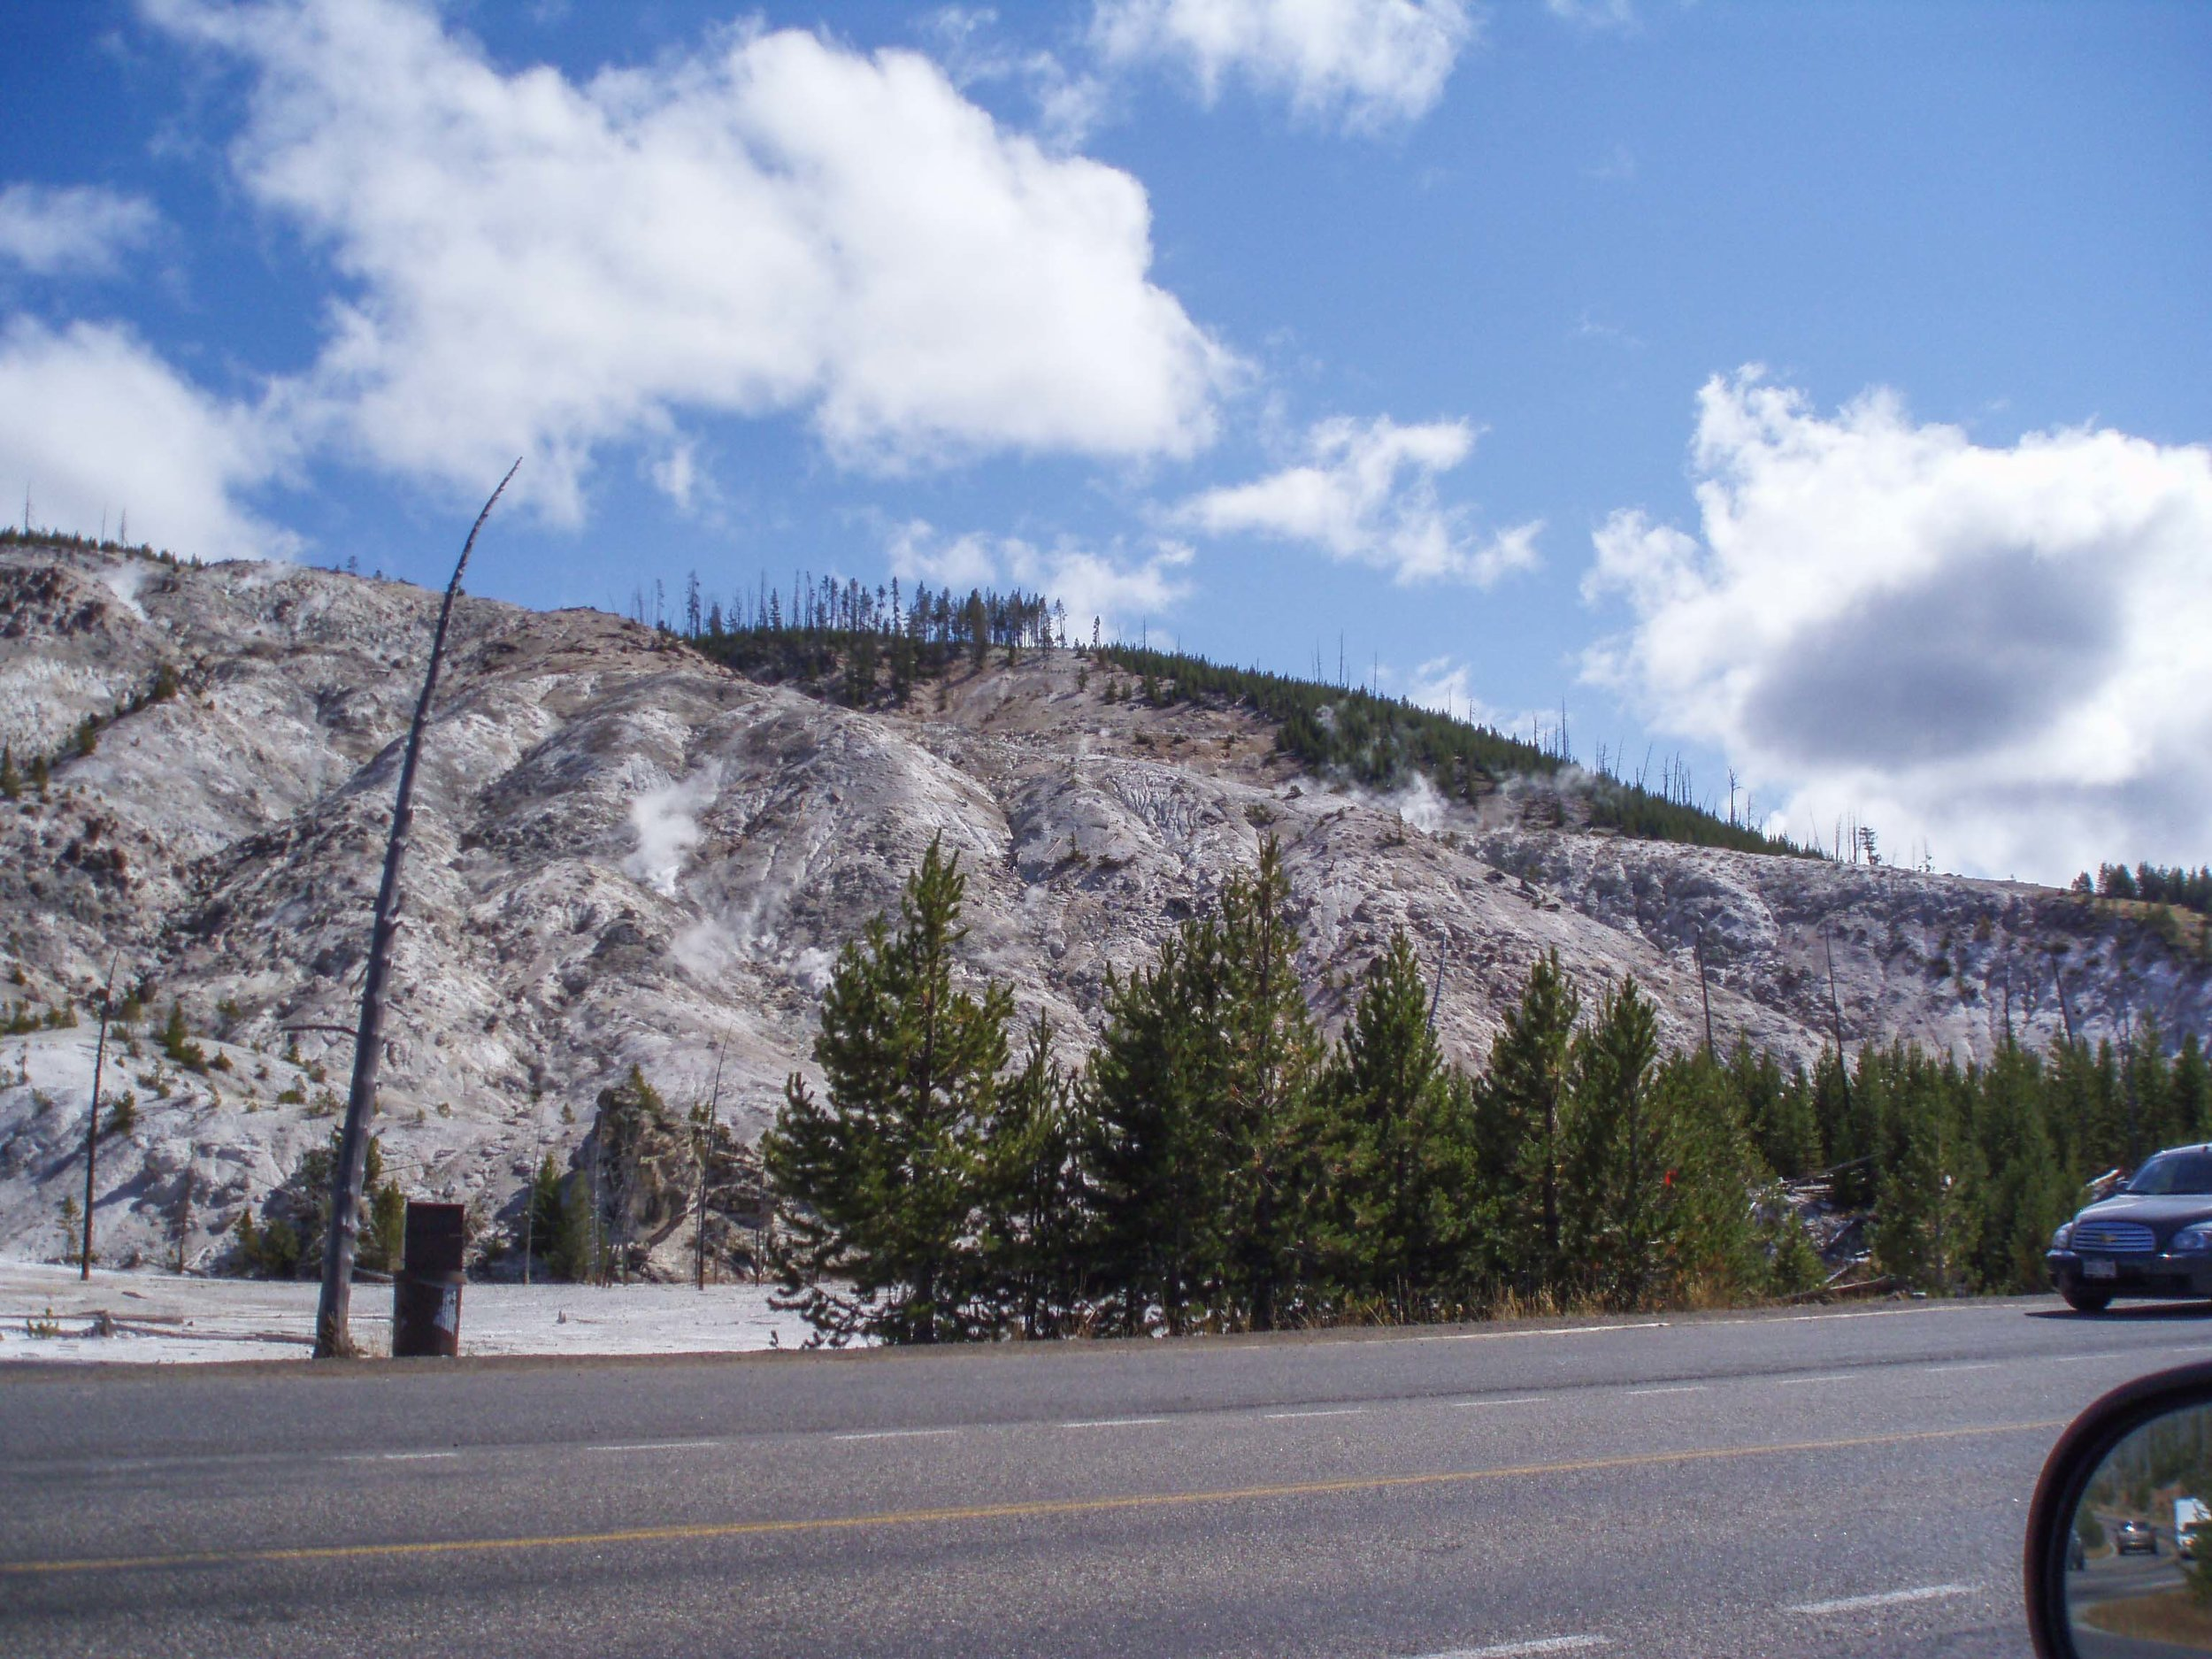 Roaring Mountain | The Ultimate Travel Guide for Yellowstone National Park by Travel + Lifestyle blogger Bri Sul